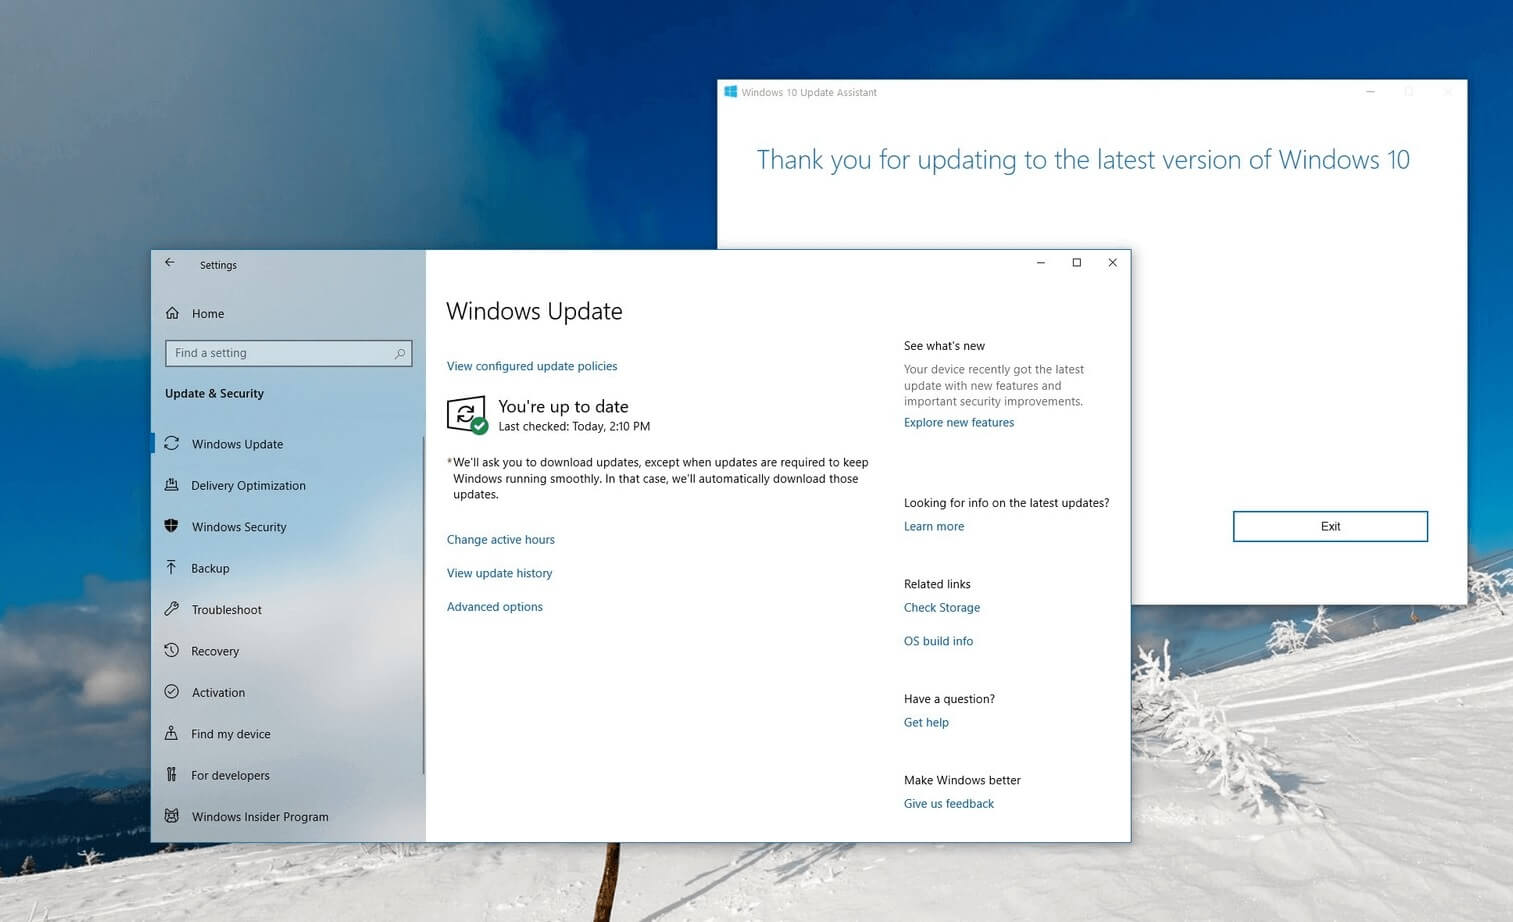 Windows 10 May 2020 Update inches closer to public launch Windows-10-May-2020-Update.jpg